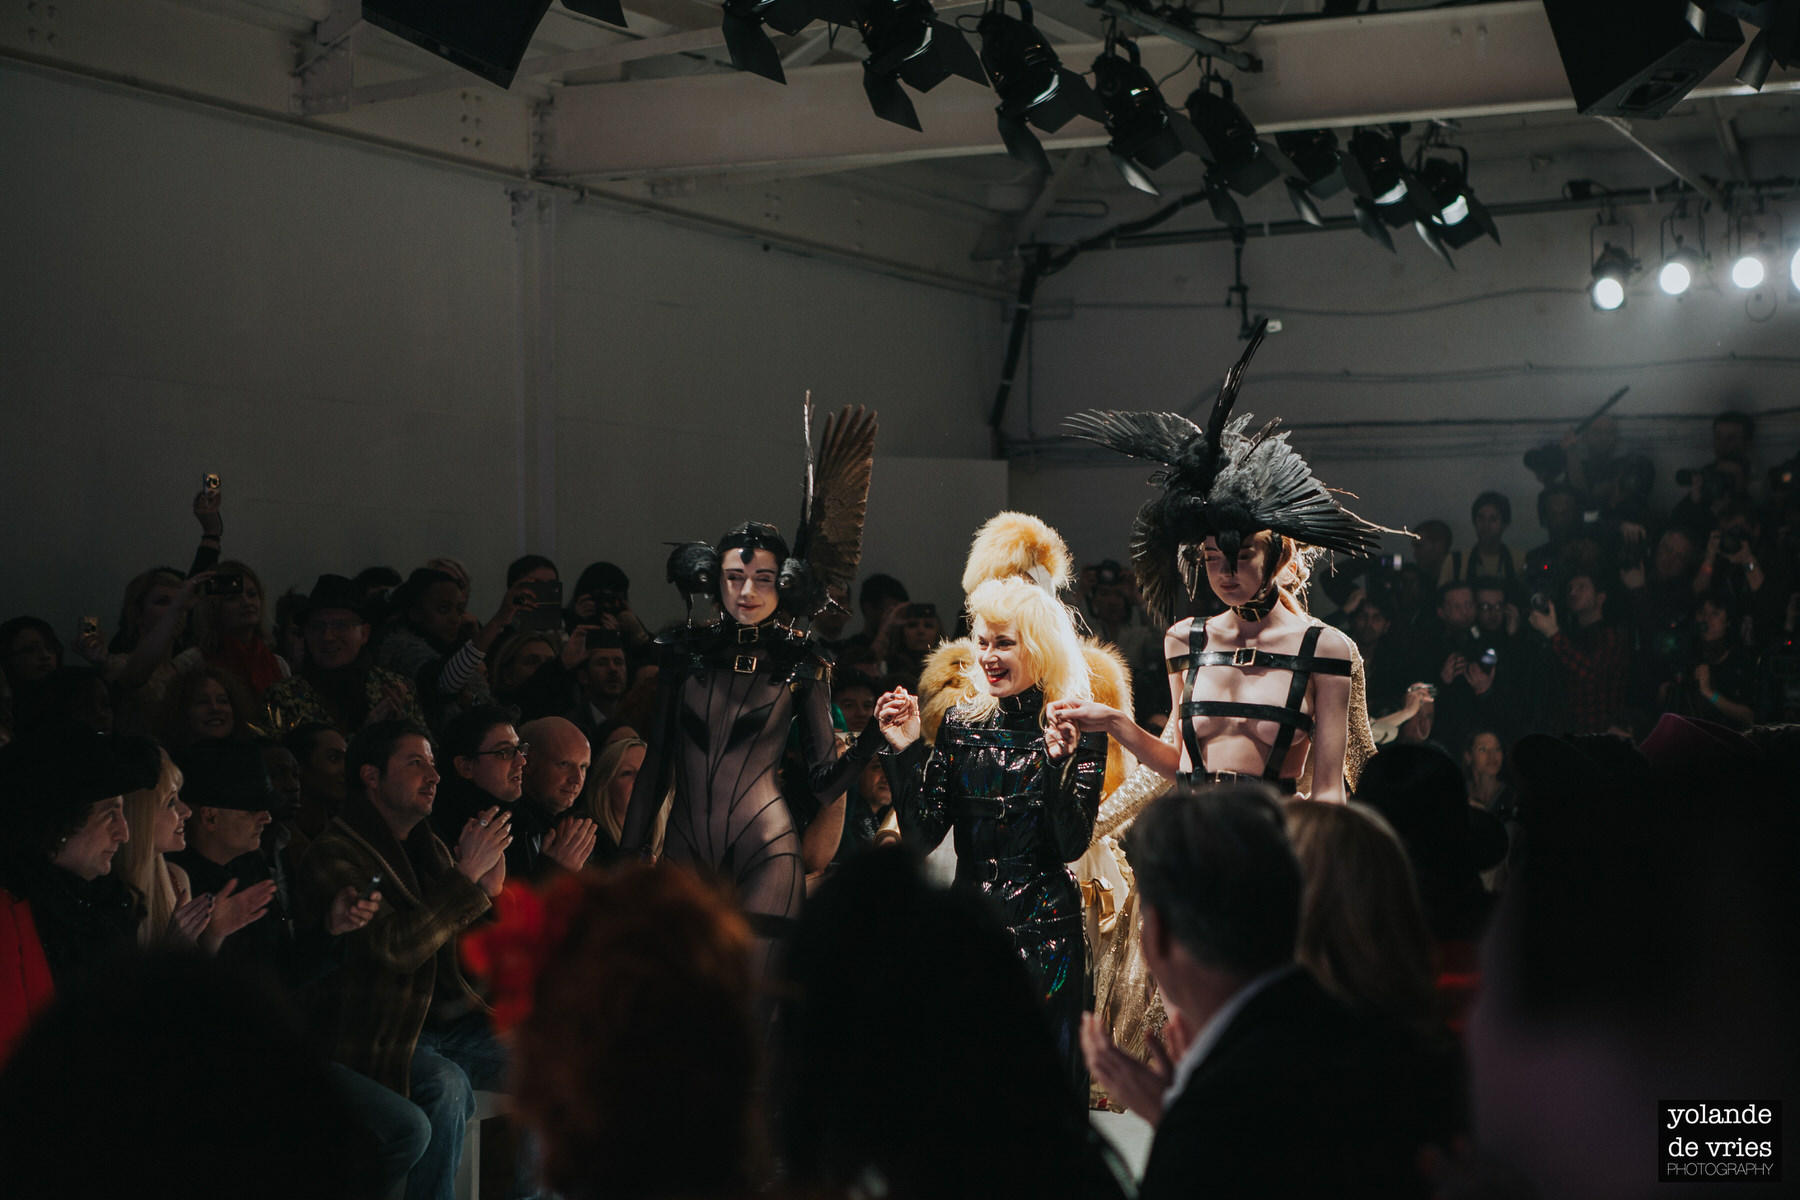 Pam-Hogg-AW11-Far-From-The-Madding-Crowd-2185.jpg